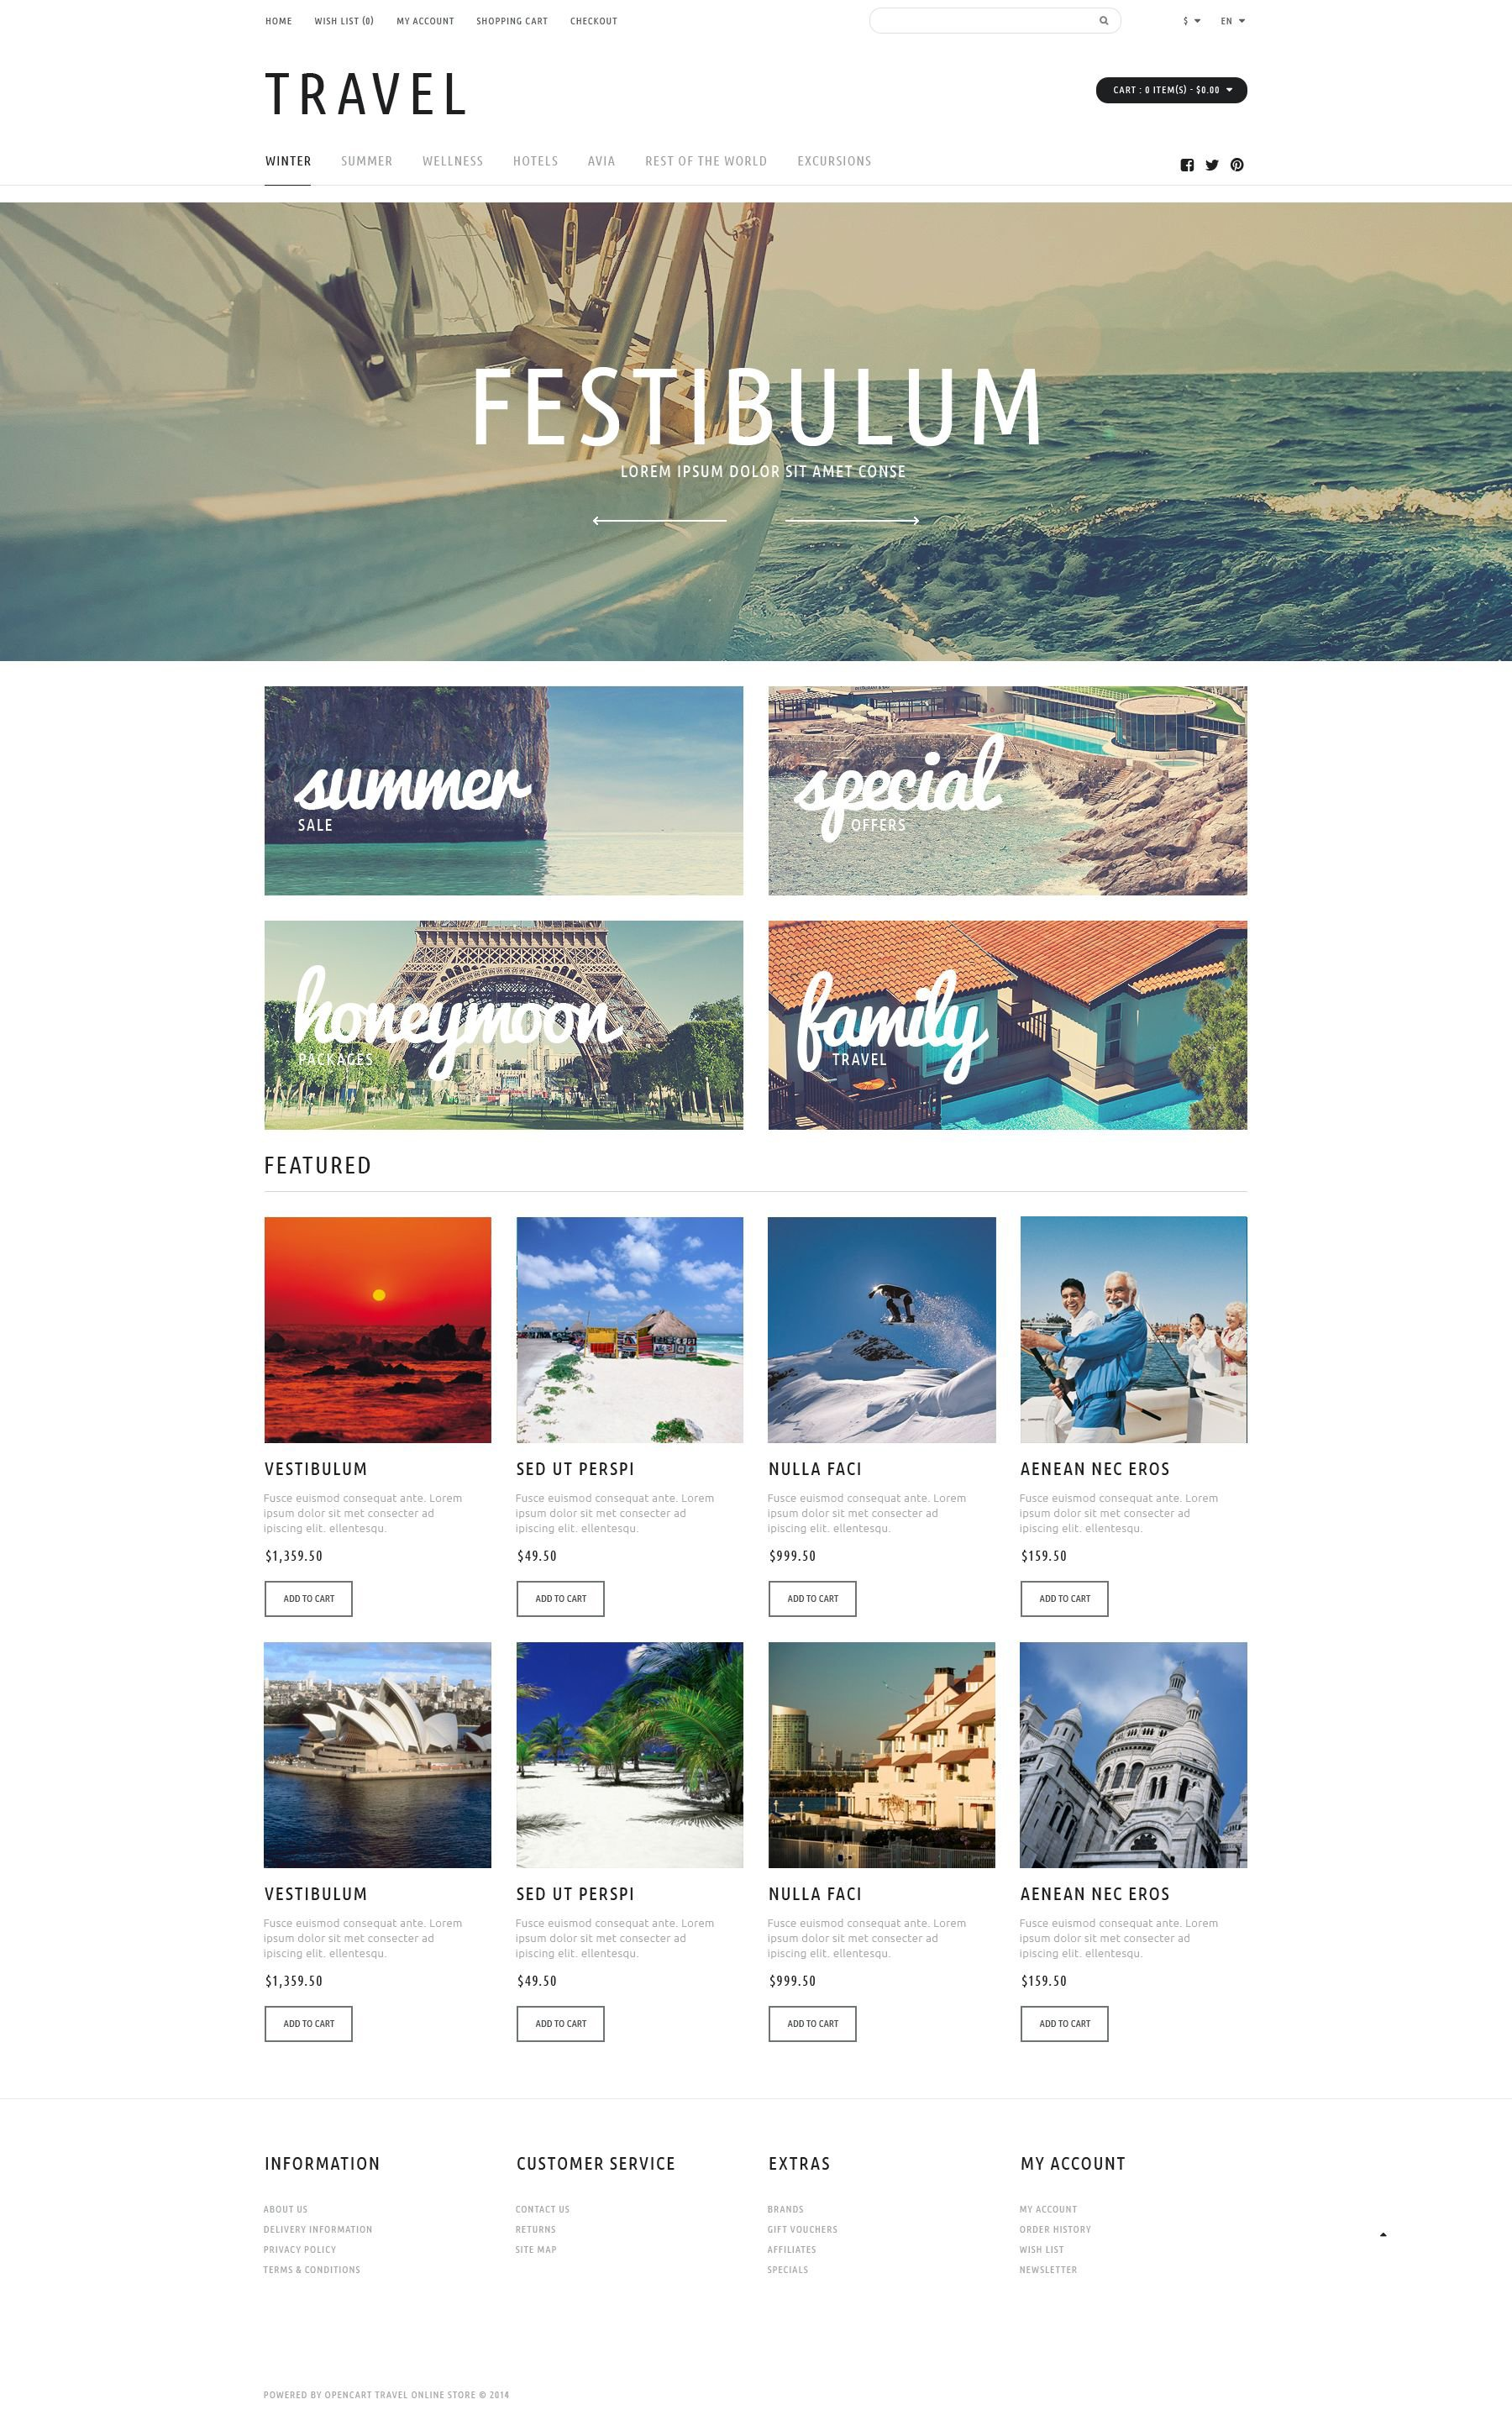 Travel tours store opencart template 53084 travel tours store opencart template new screenshots big zoom in live demo fandeluxe Gallery